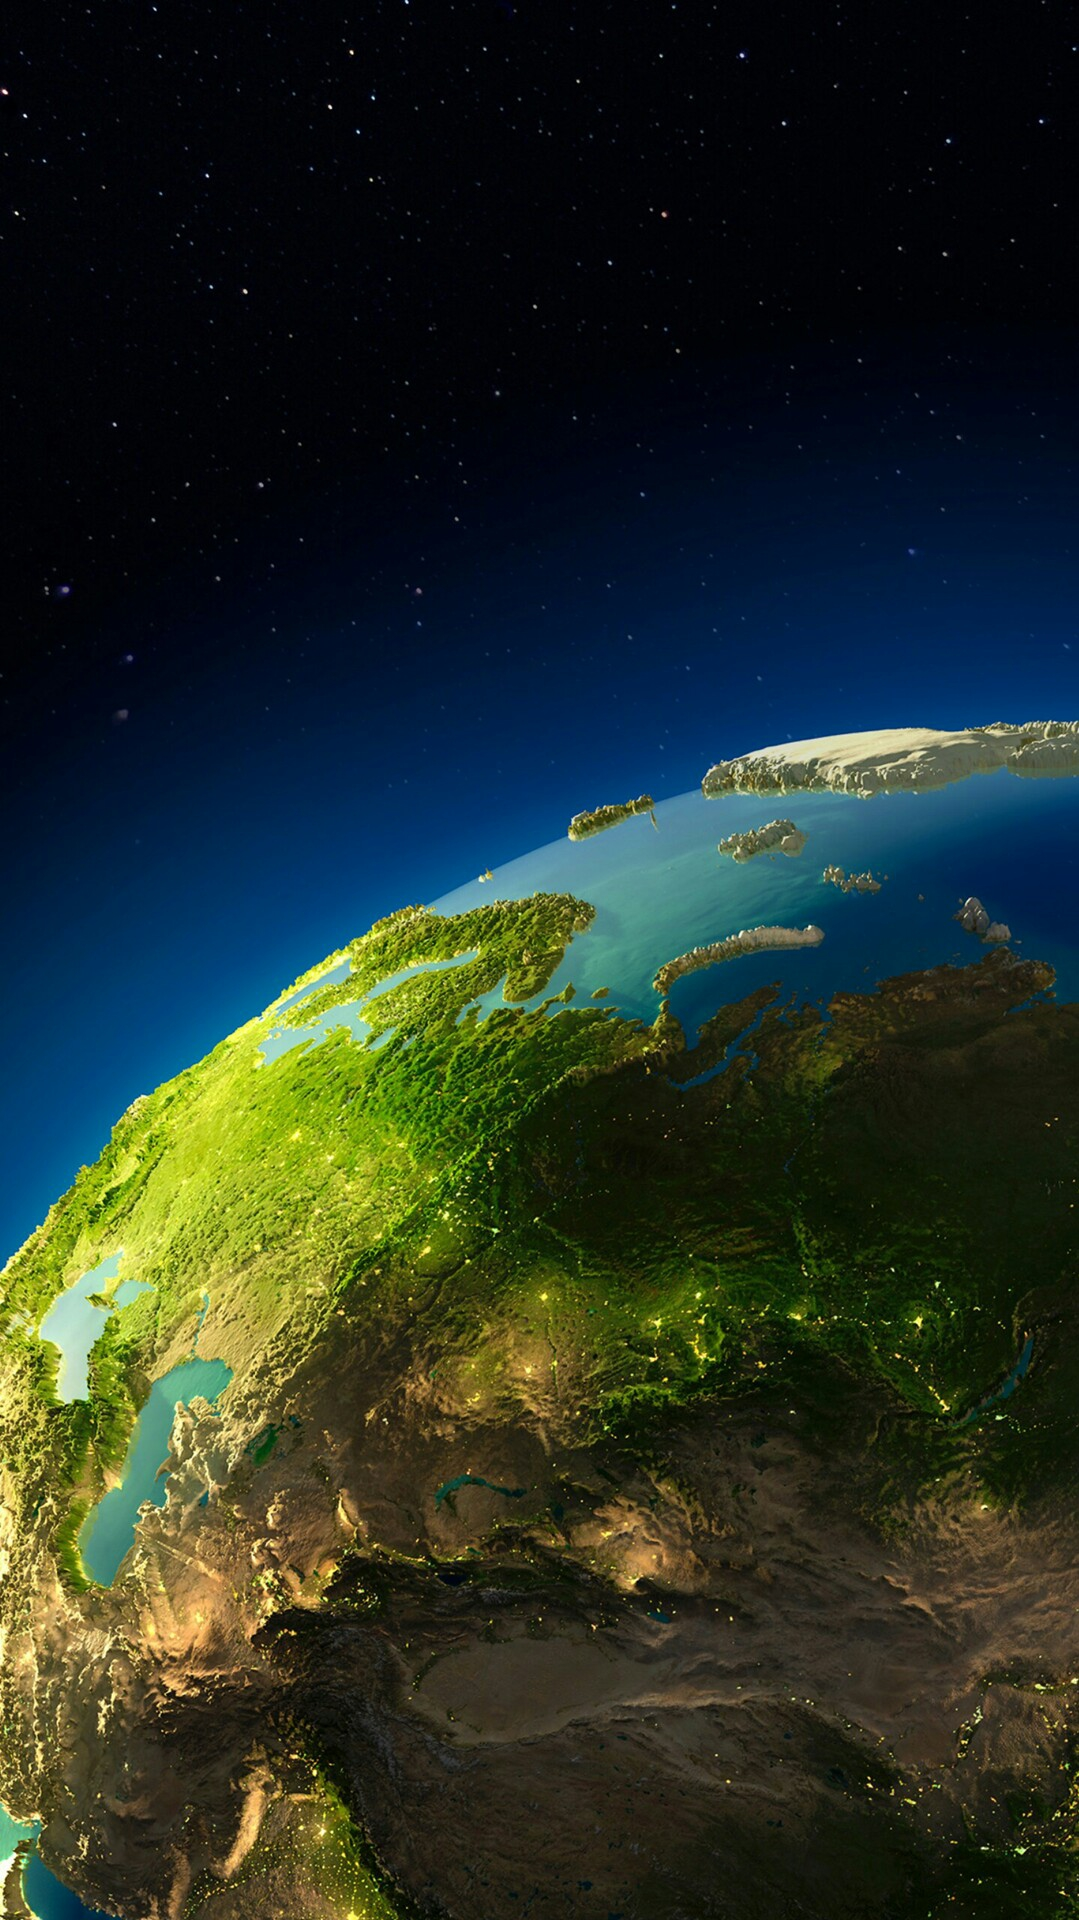 Planet Earth Digital Art 3D iPhone Wallpaper iphoneswallpapers com